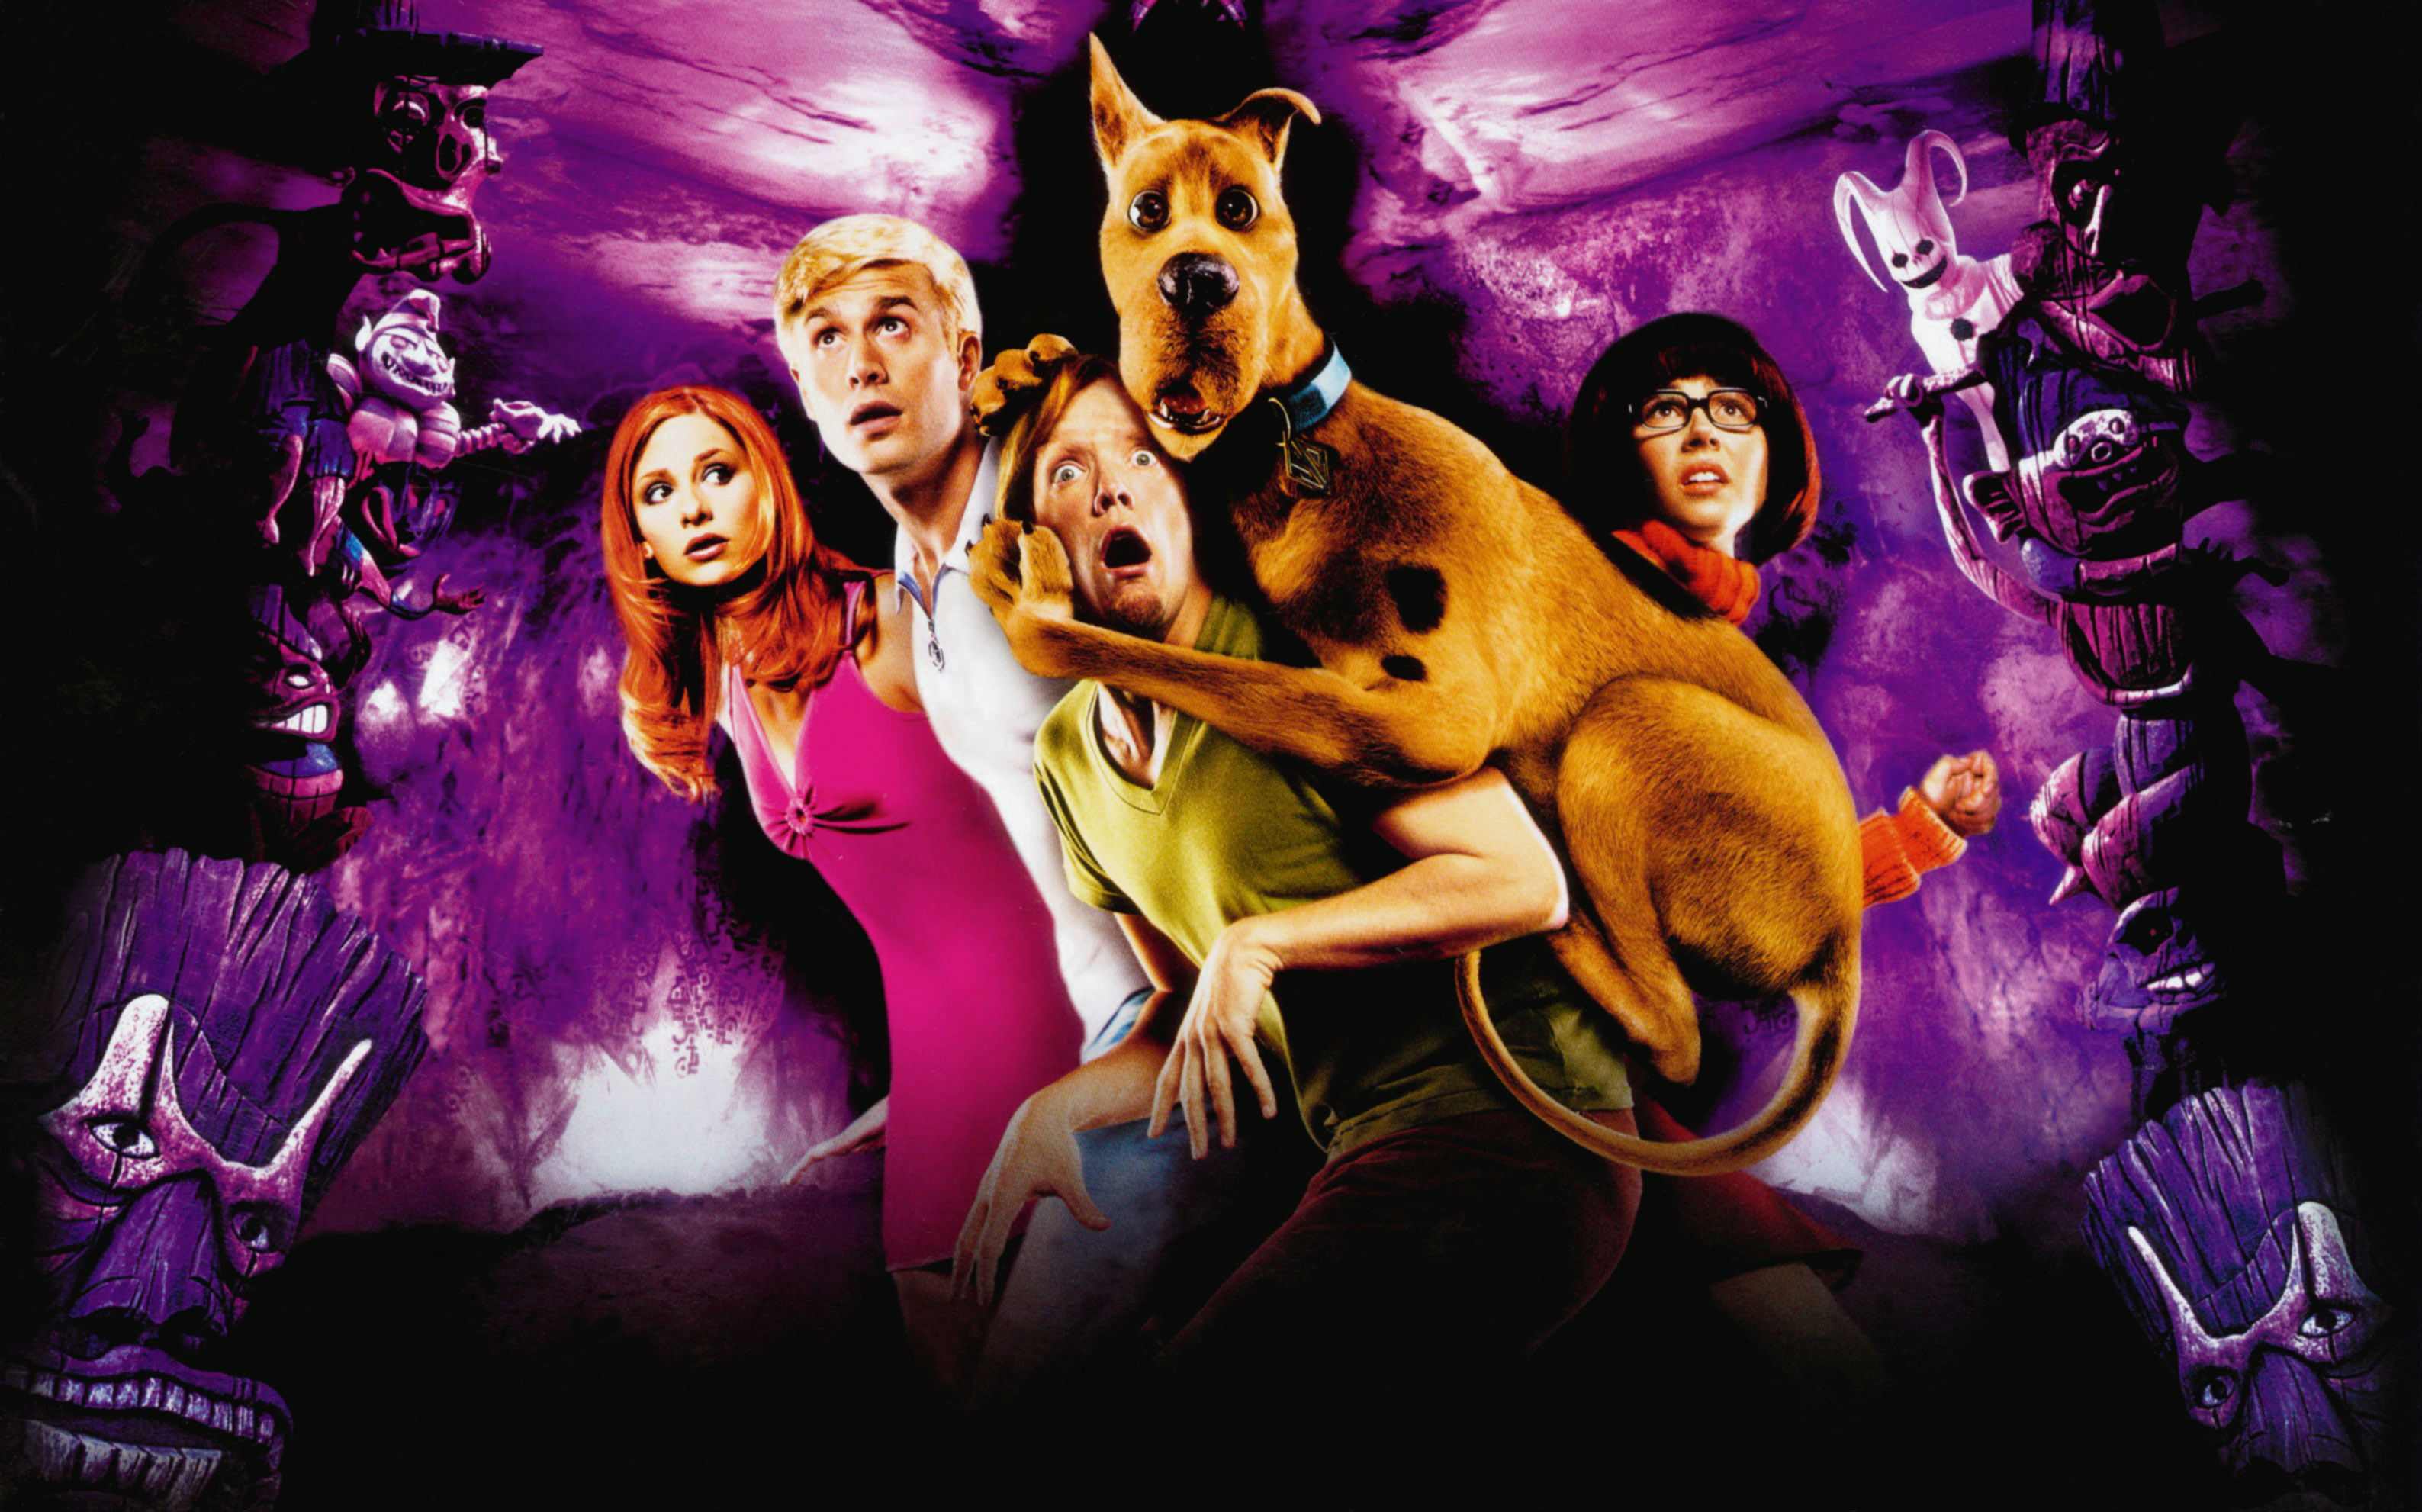 Scooby doo in the movie